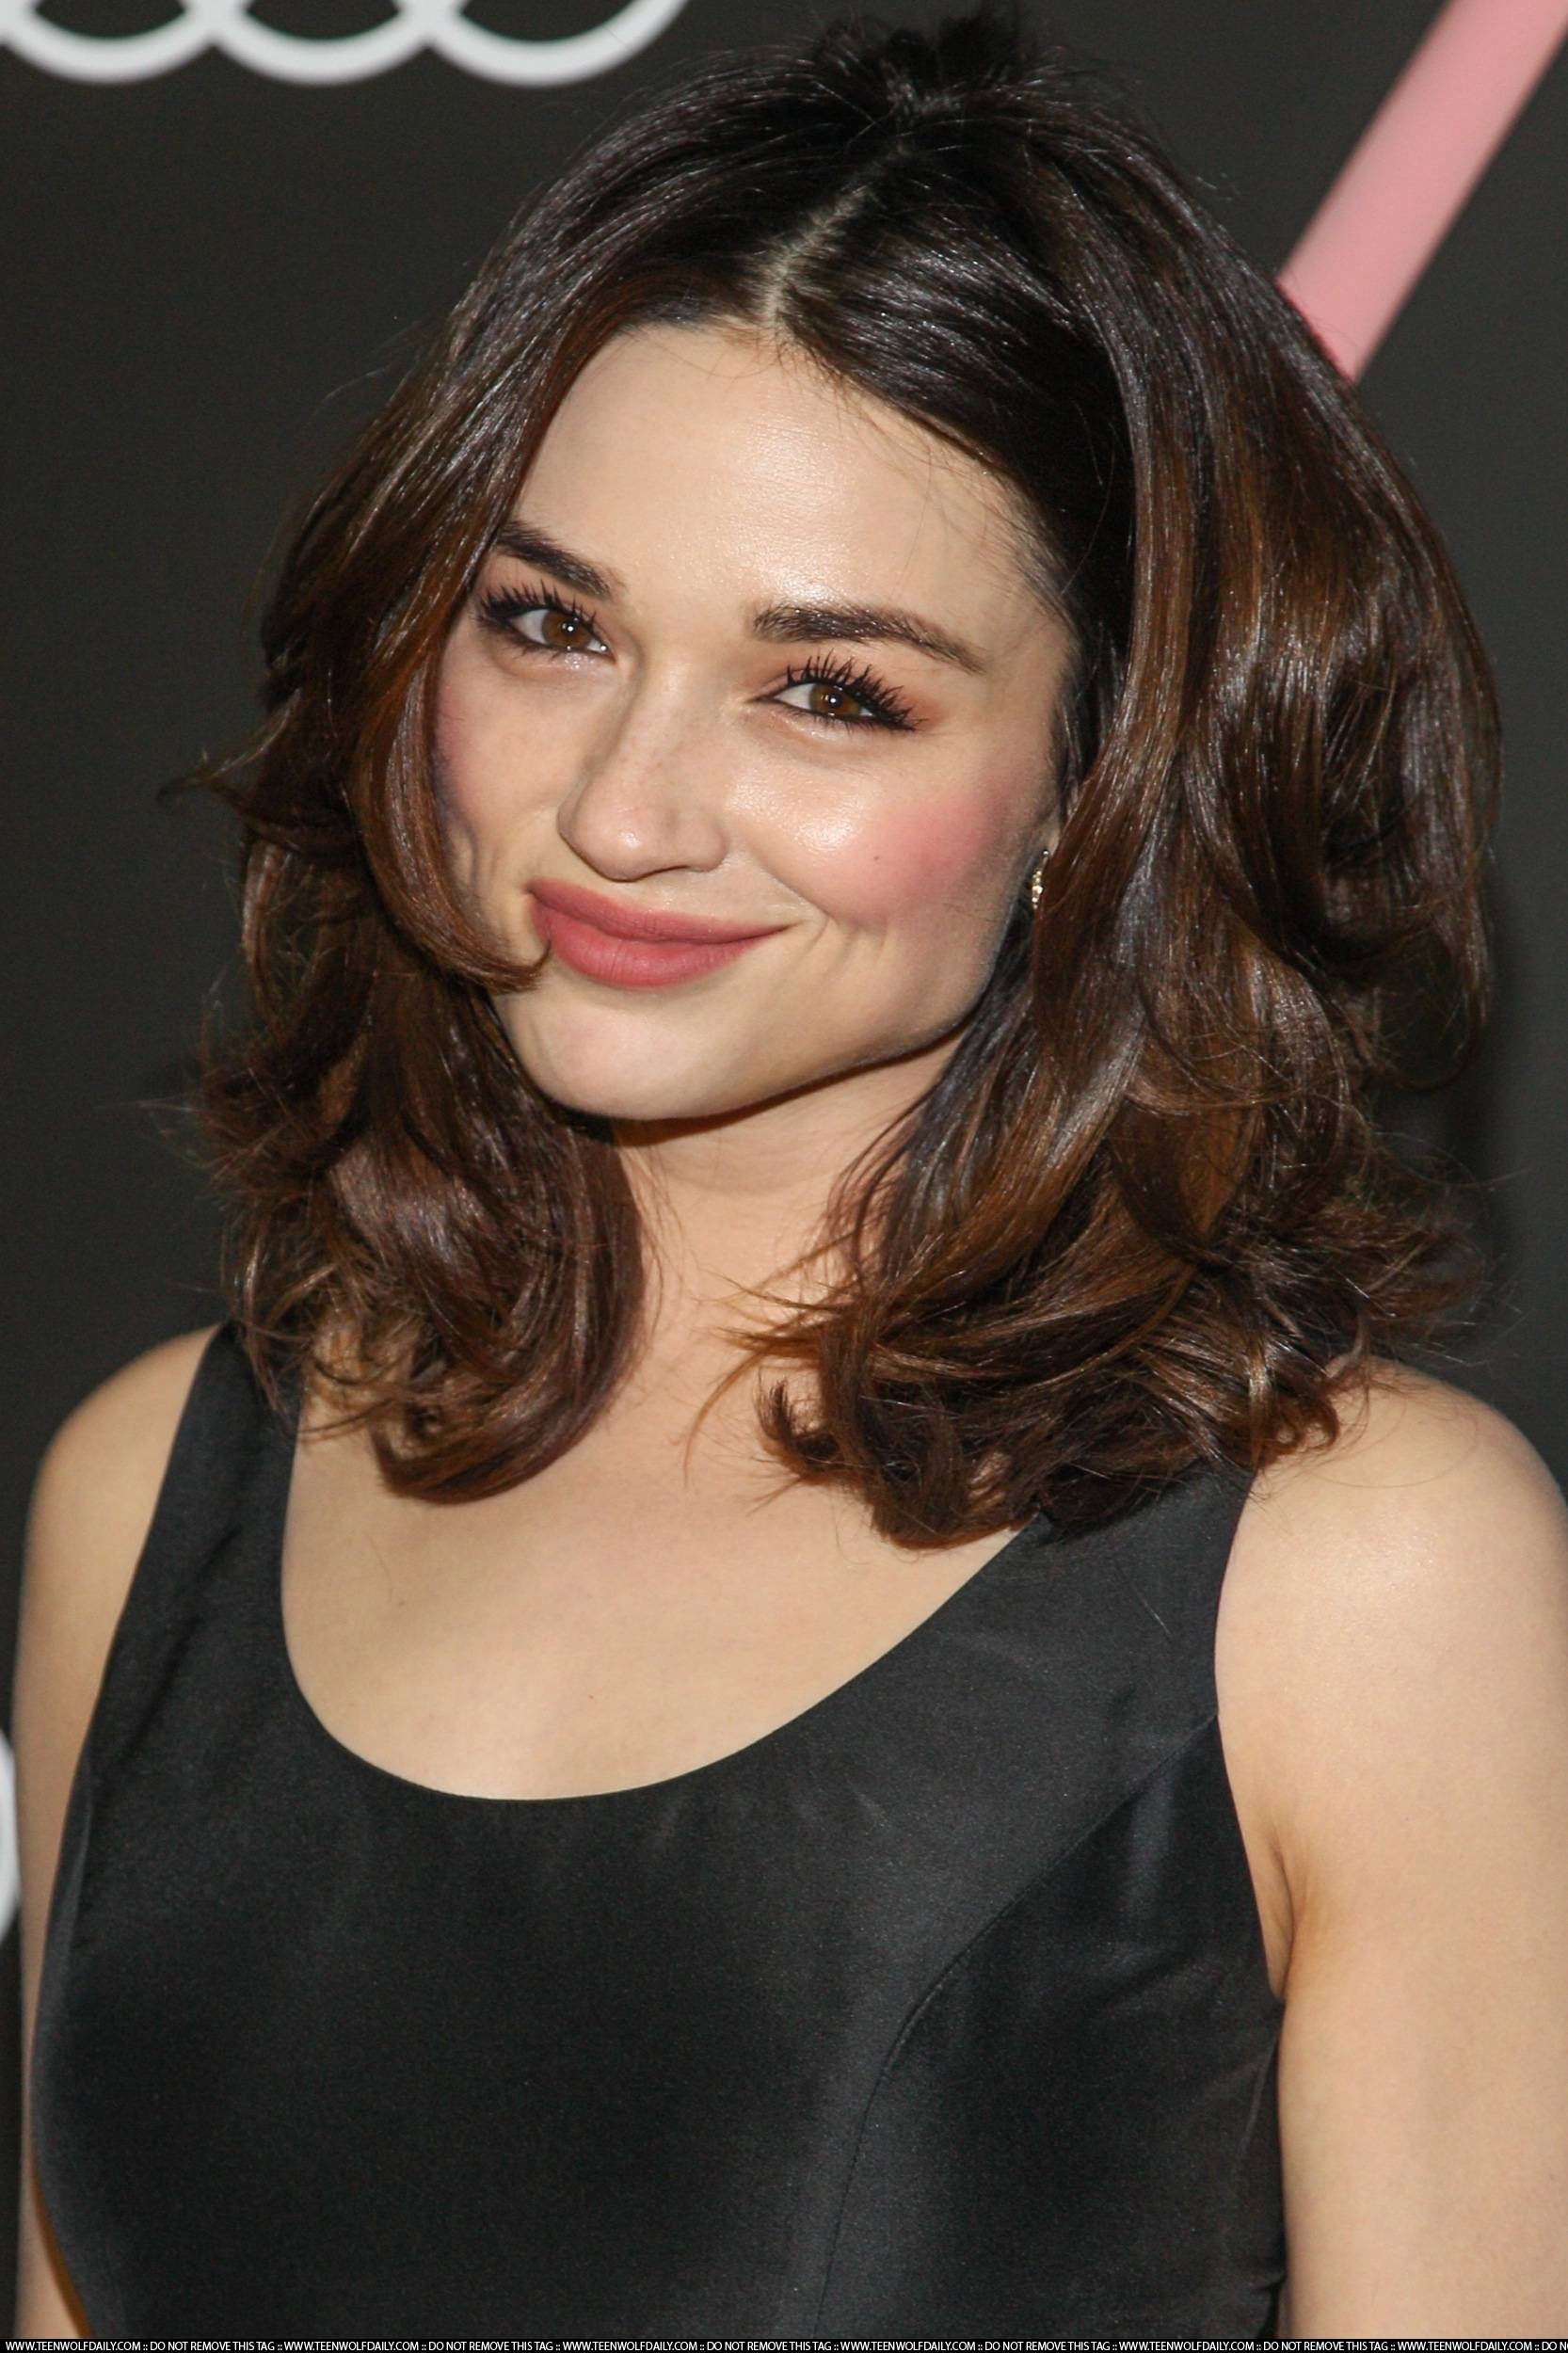 Nice Images Collection: Crystal Reed Desktop Wallpapers